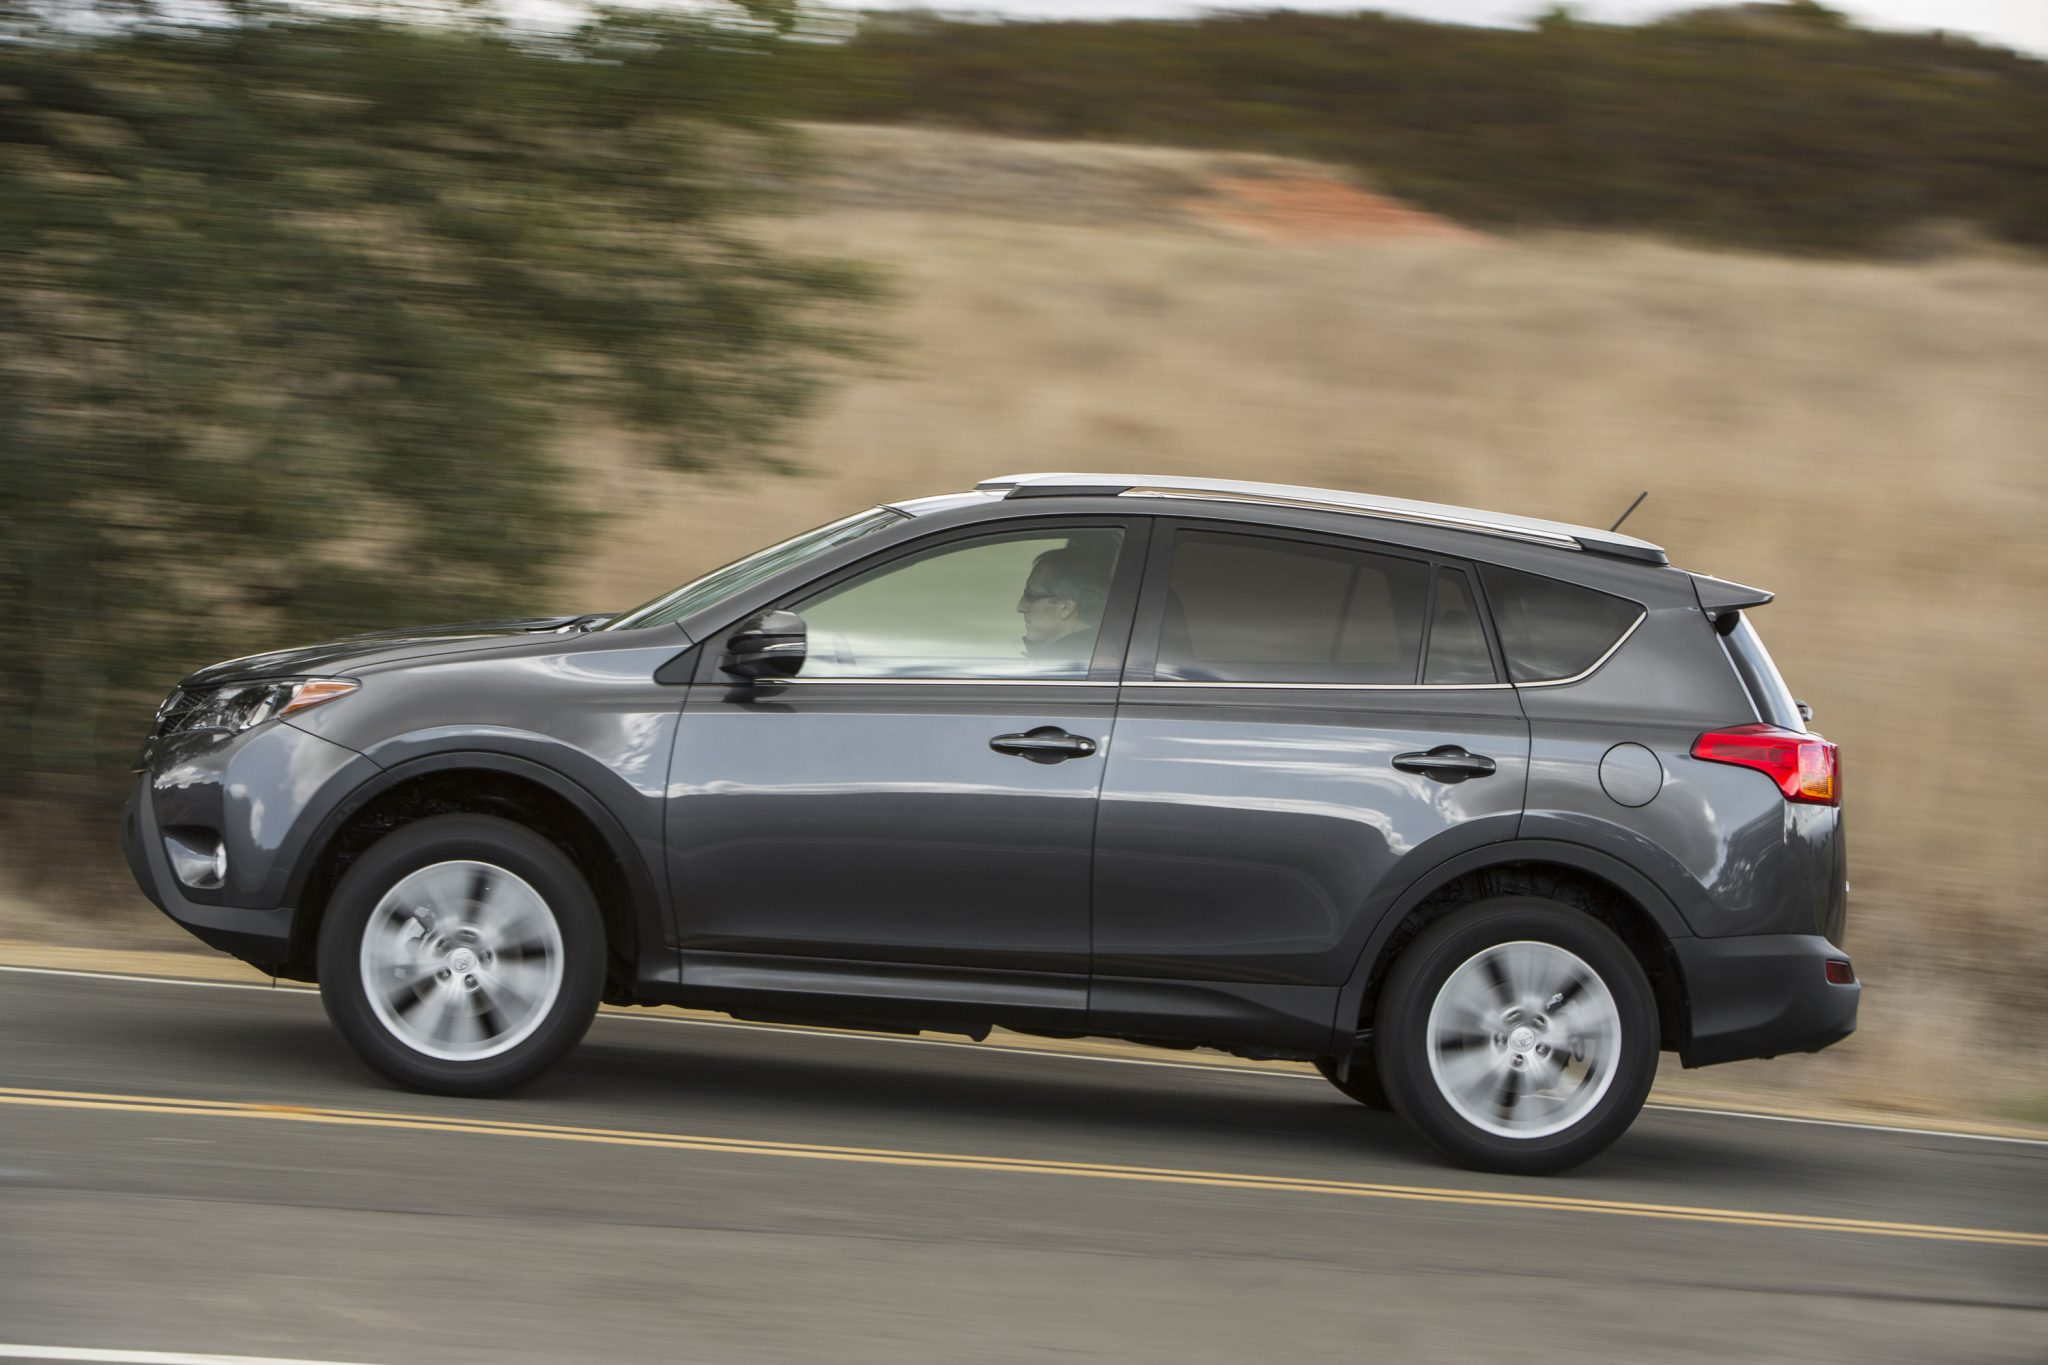 Compare designs of both the 2013 toyota rav4 2013 ford escape in this thread